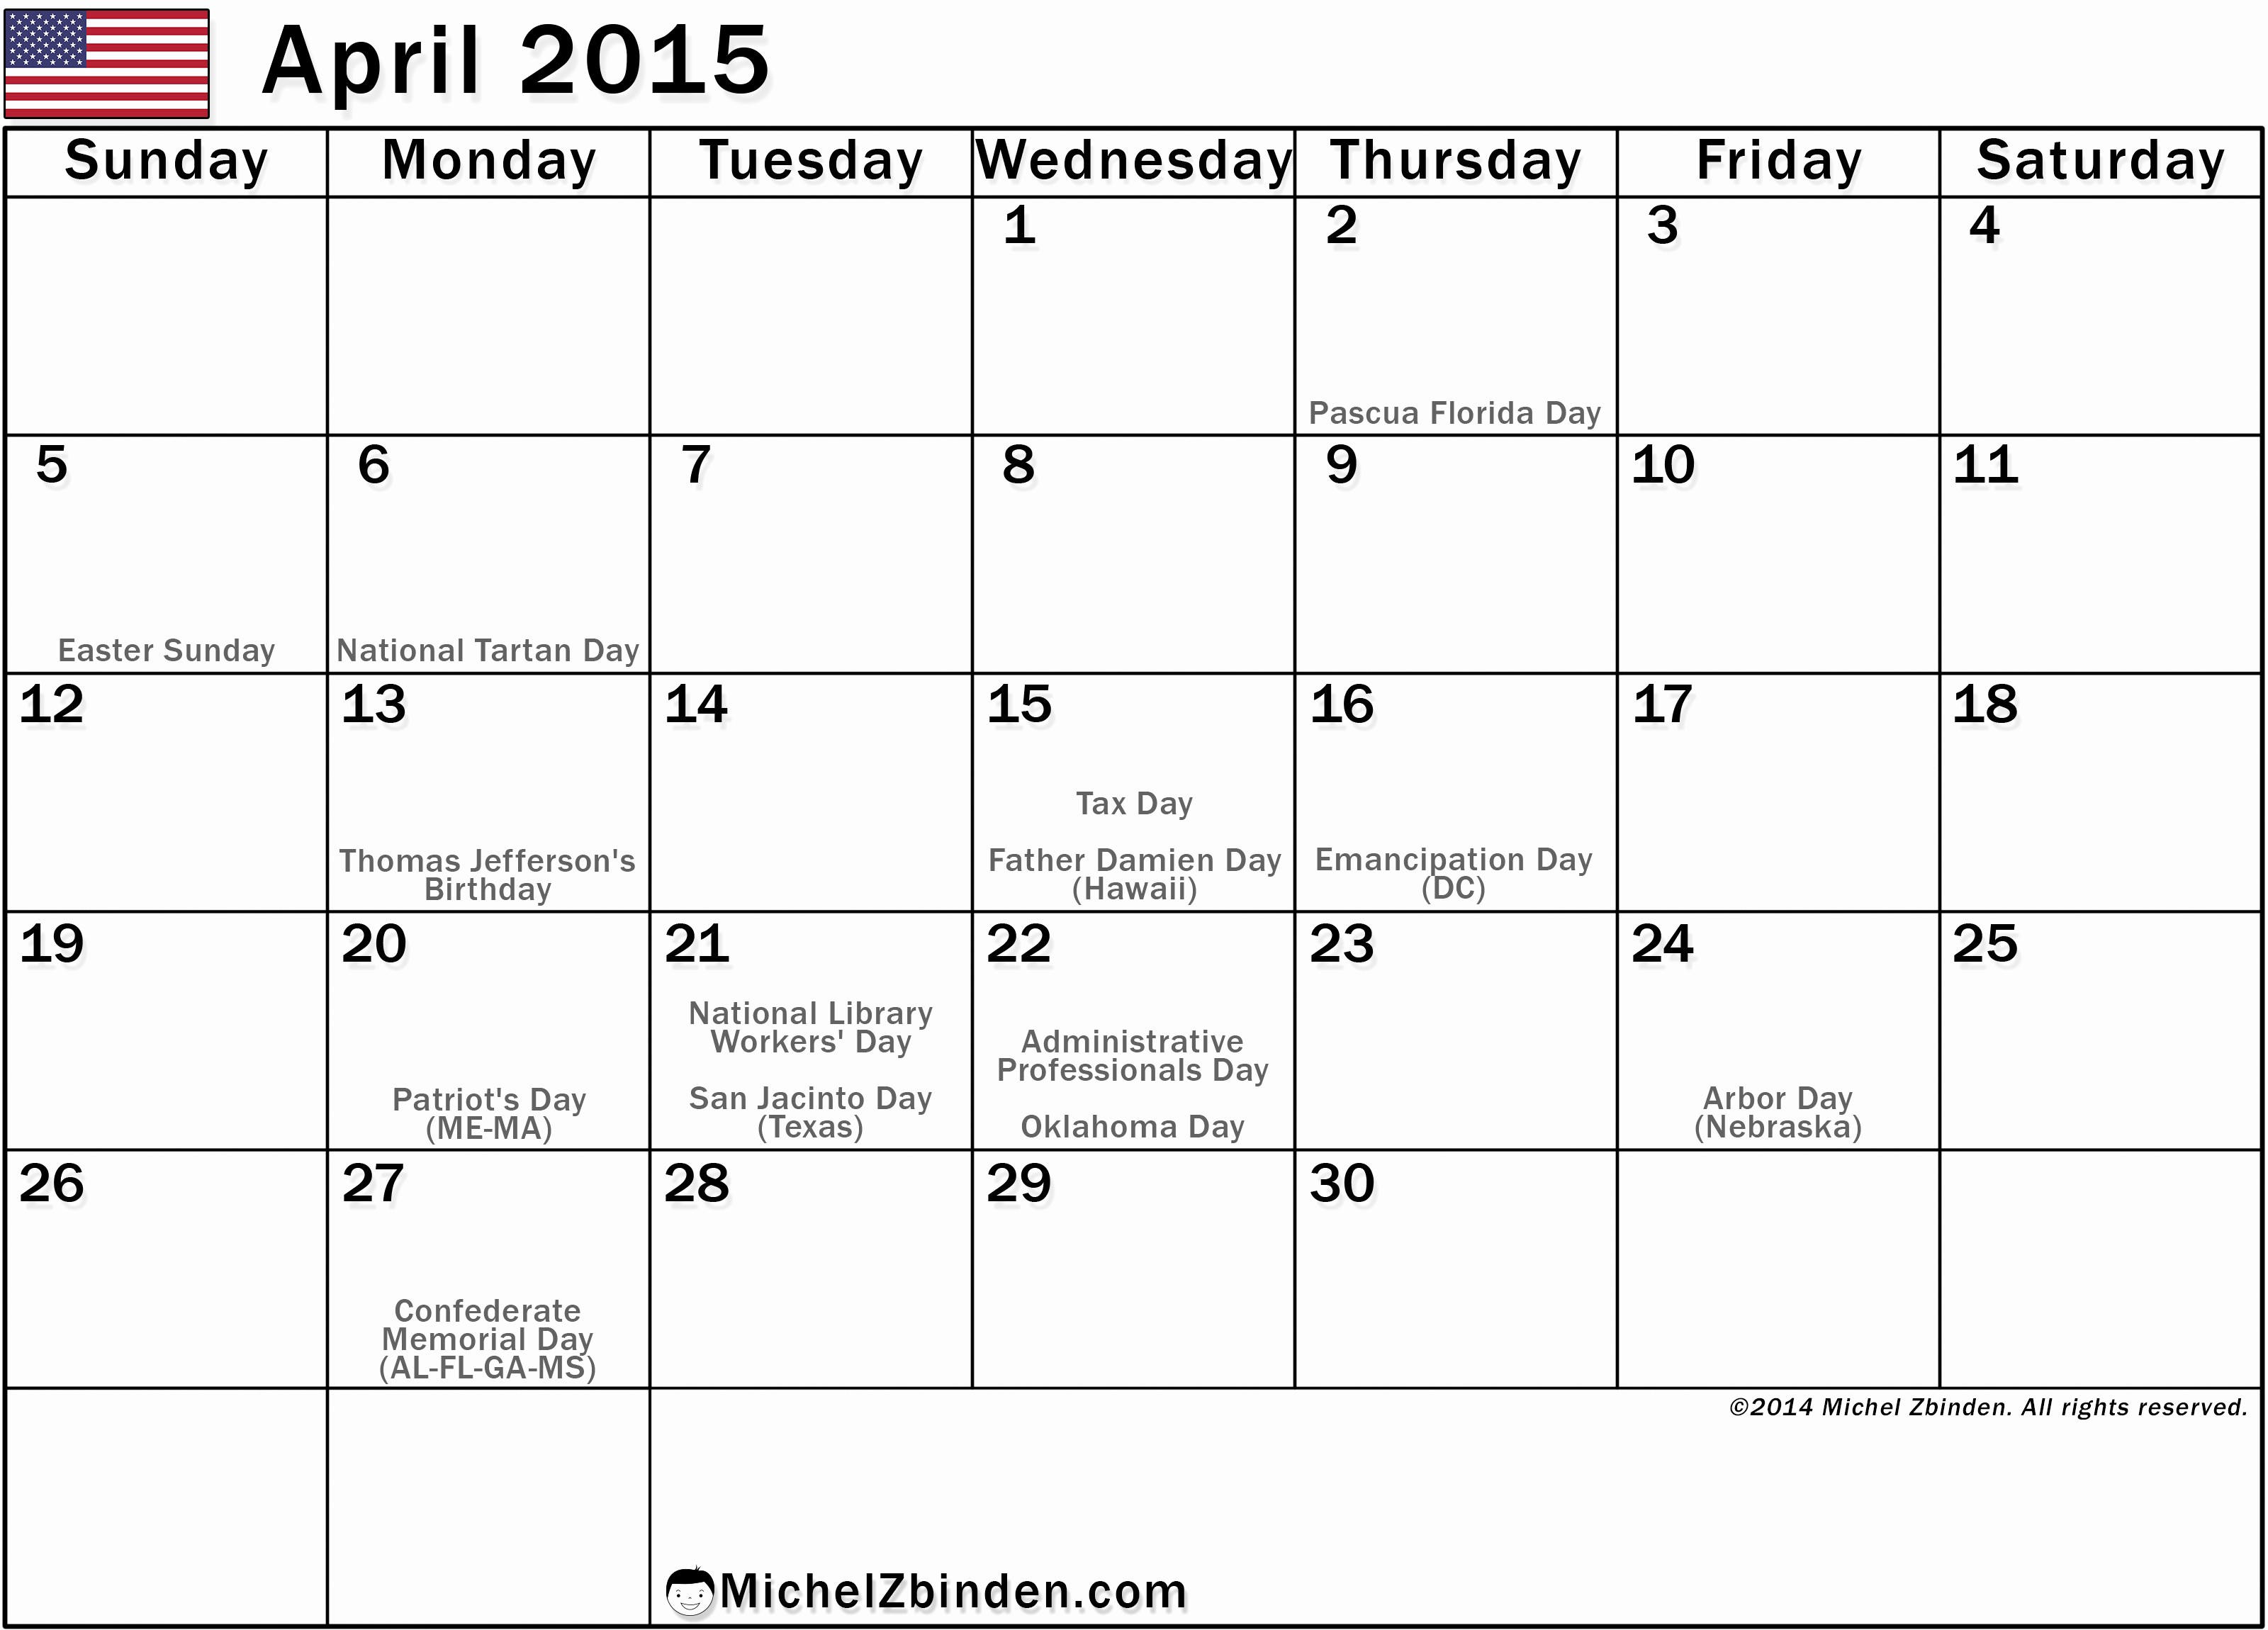 Calendar 2016 Printable with Holidays Awesome Best S April 2015 Calendar with Holidays Printable